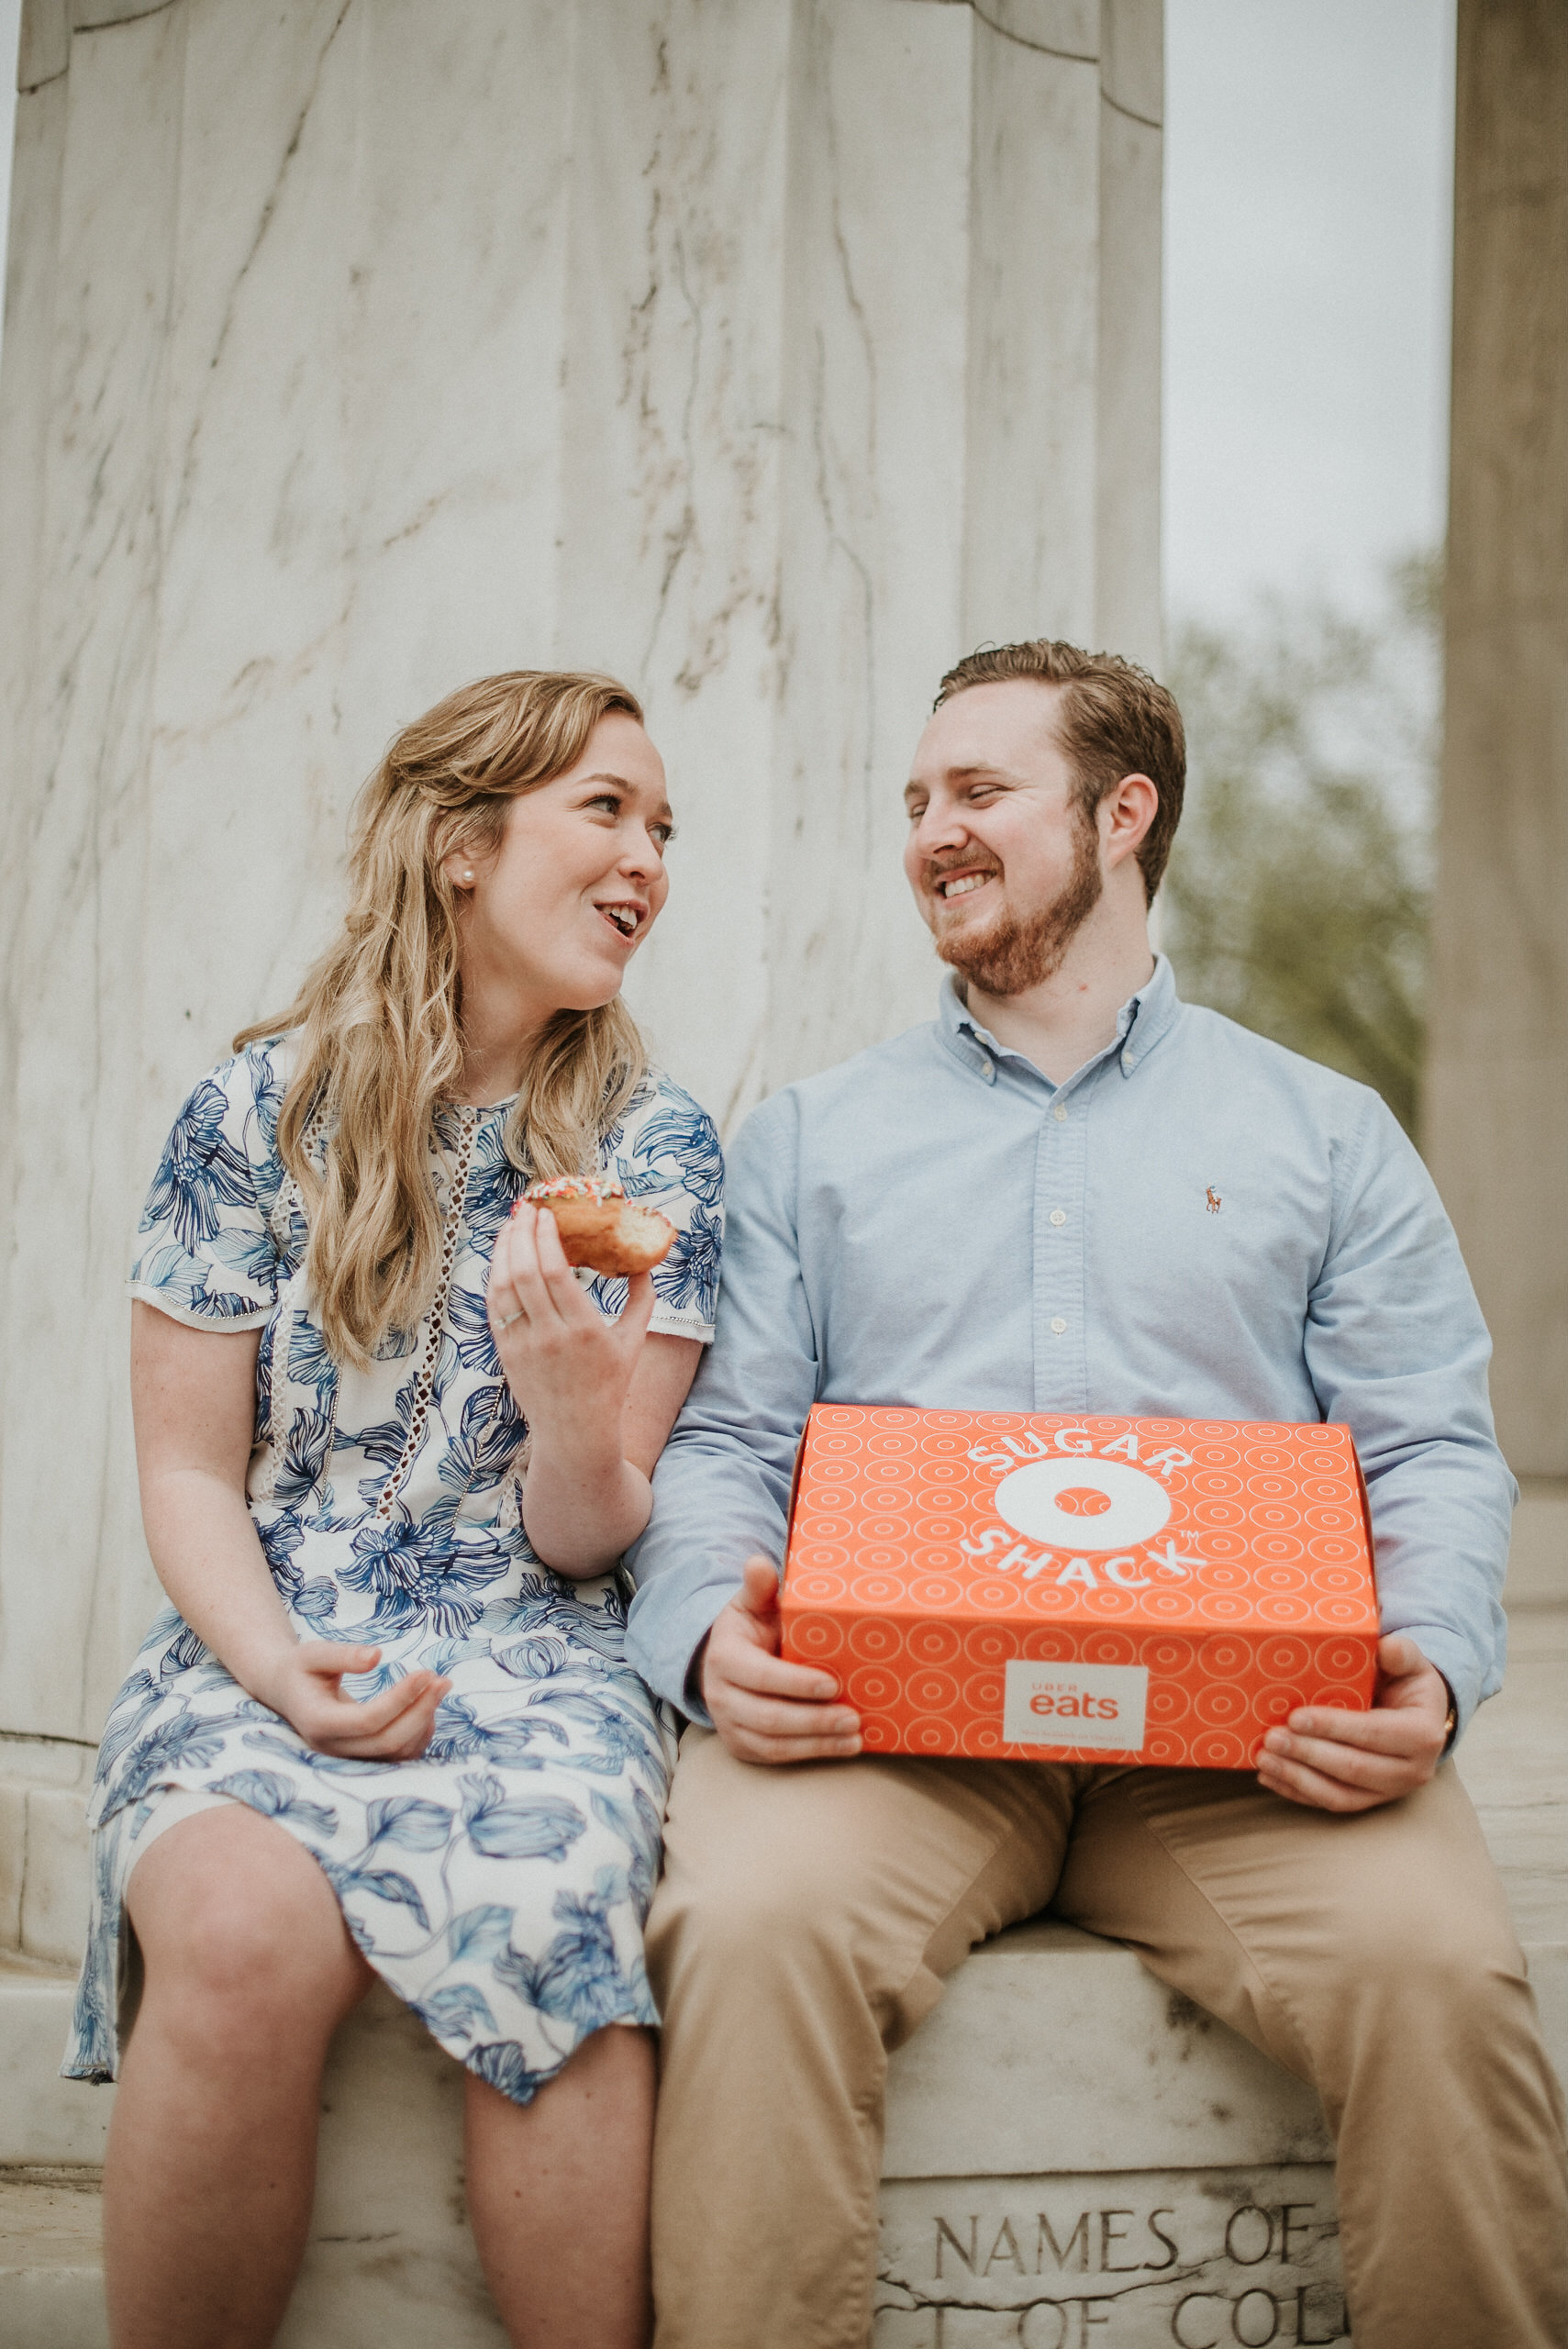 Couple sharing box of donuts